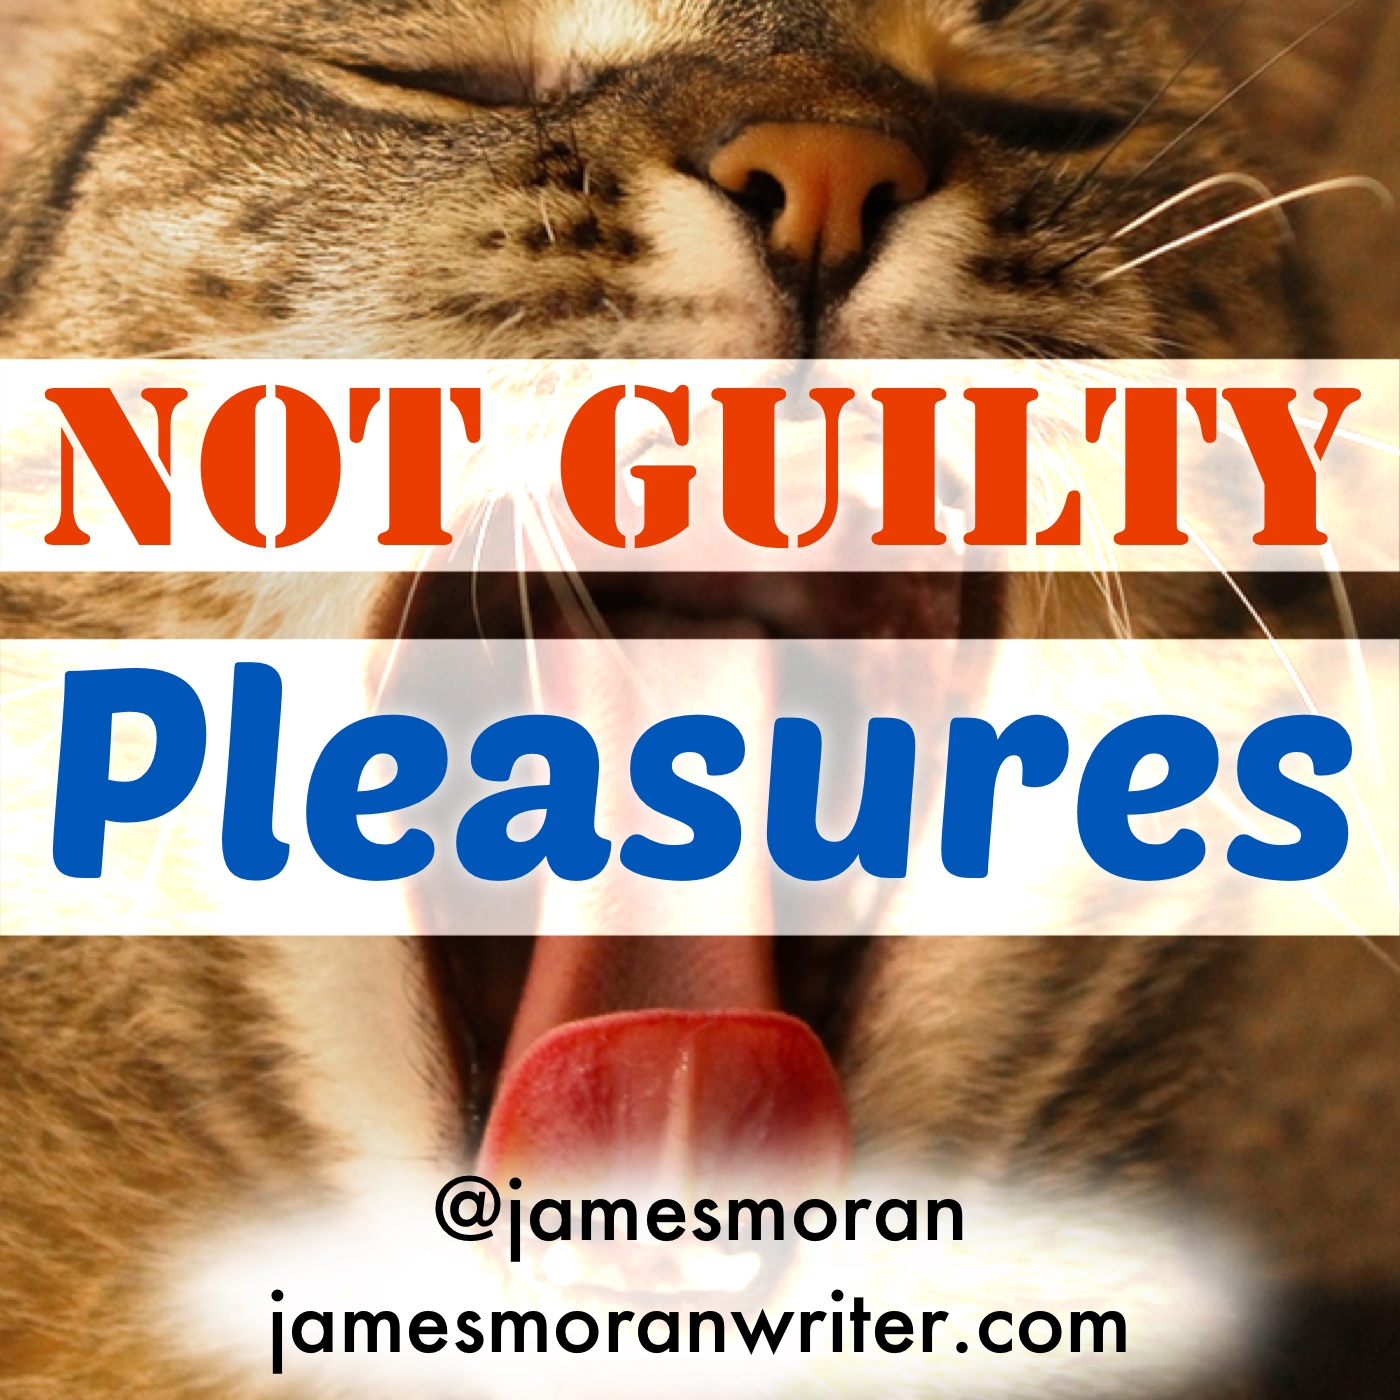 Not Guilty Pleasures